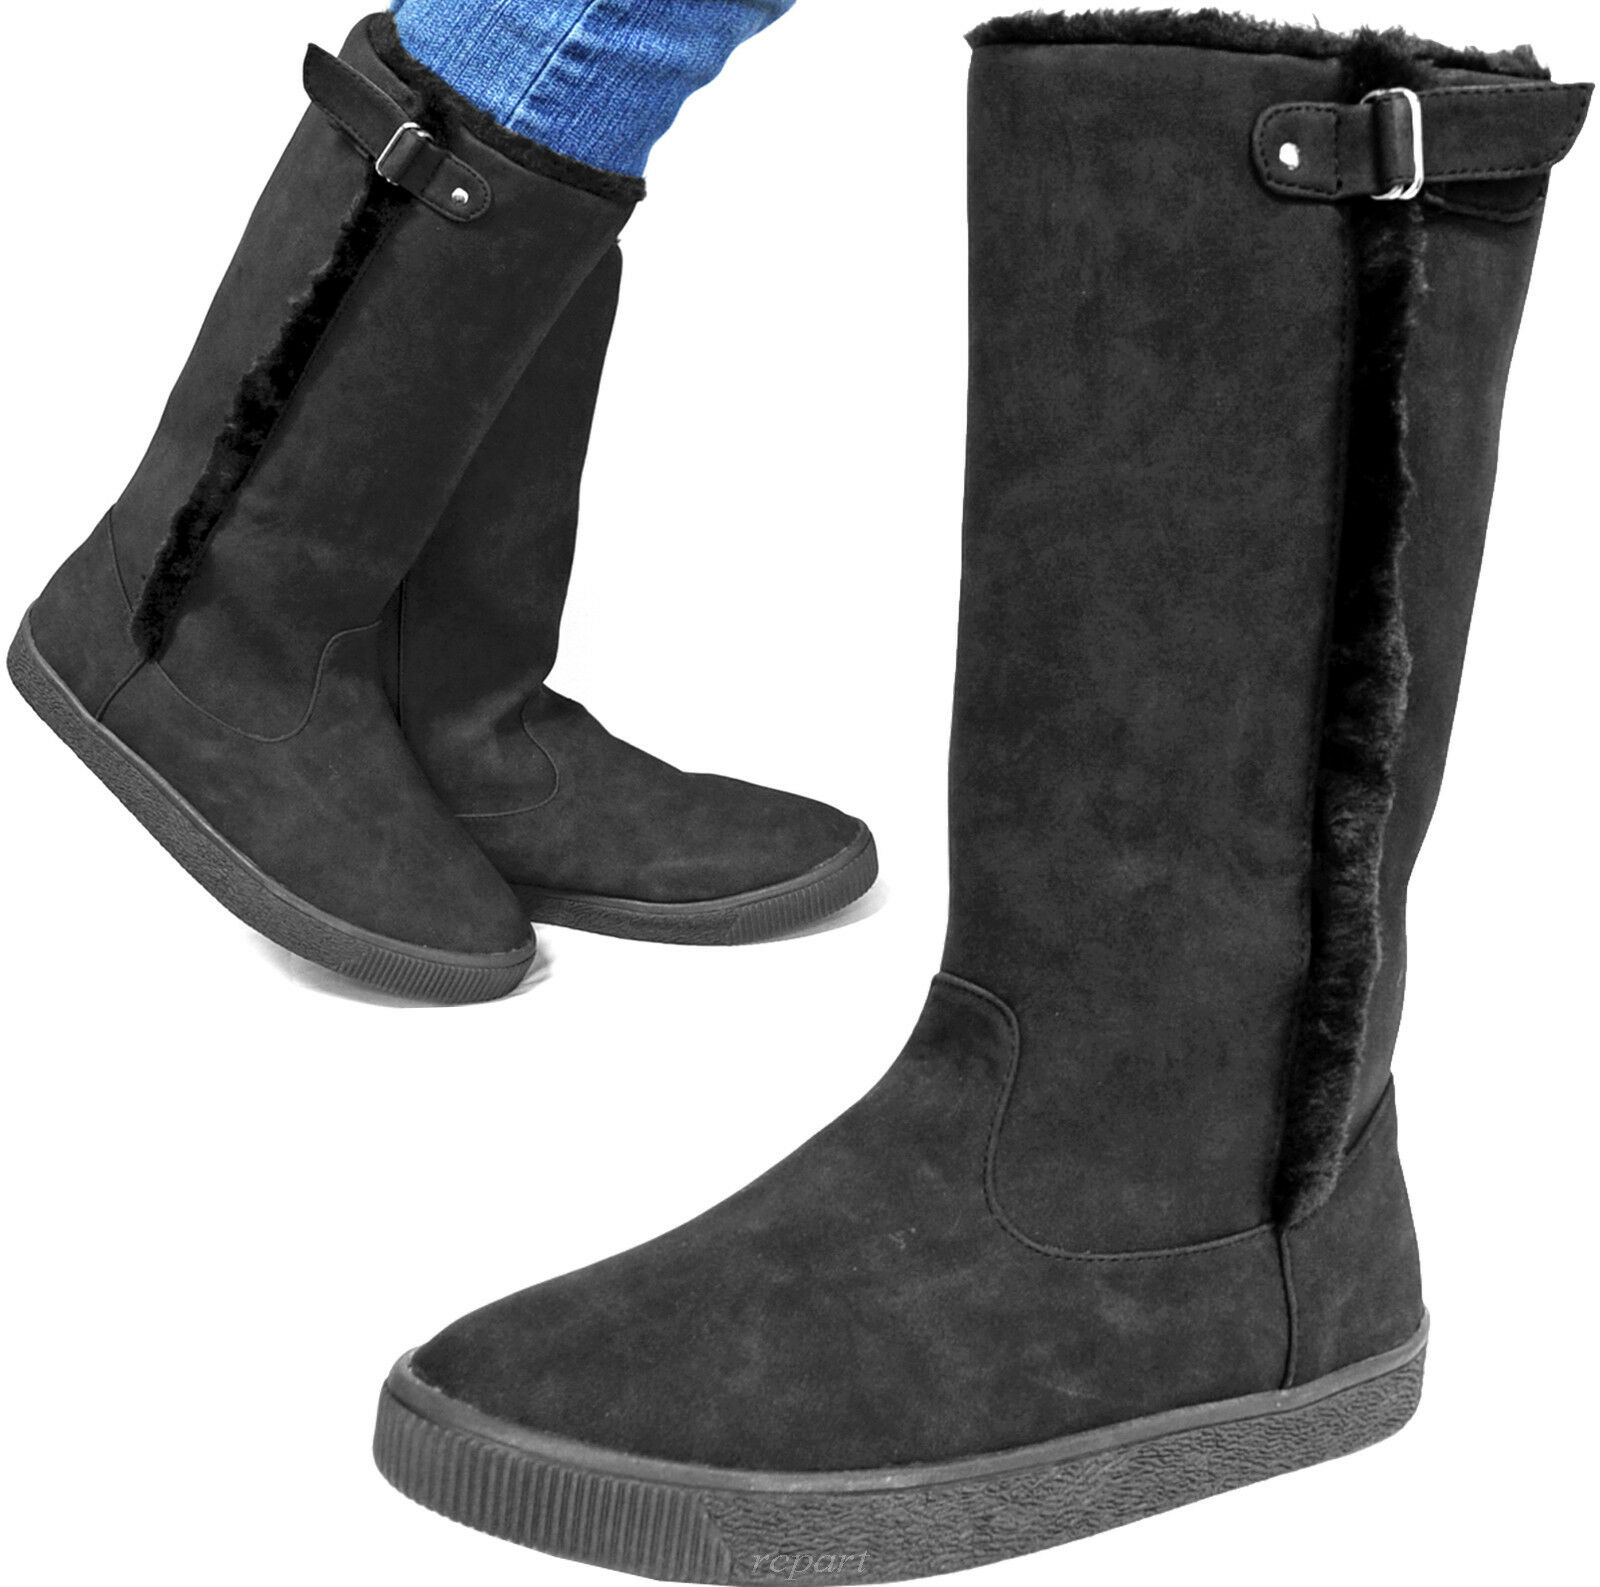 New women's shoes mid shaft boot pull up faux fur winter warm suede like black